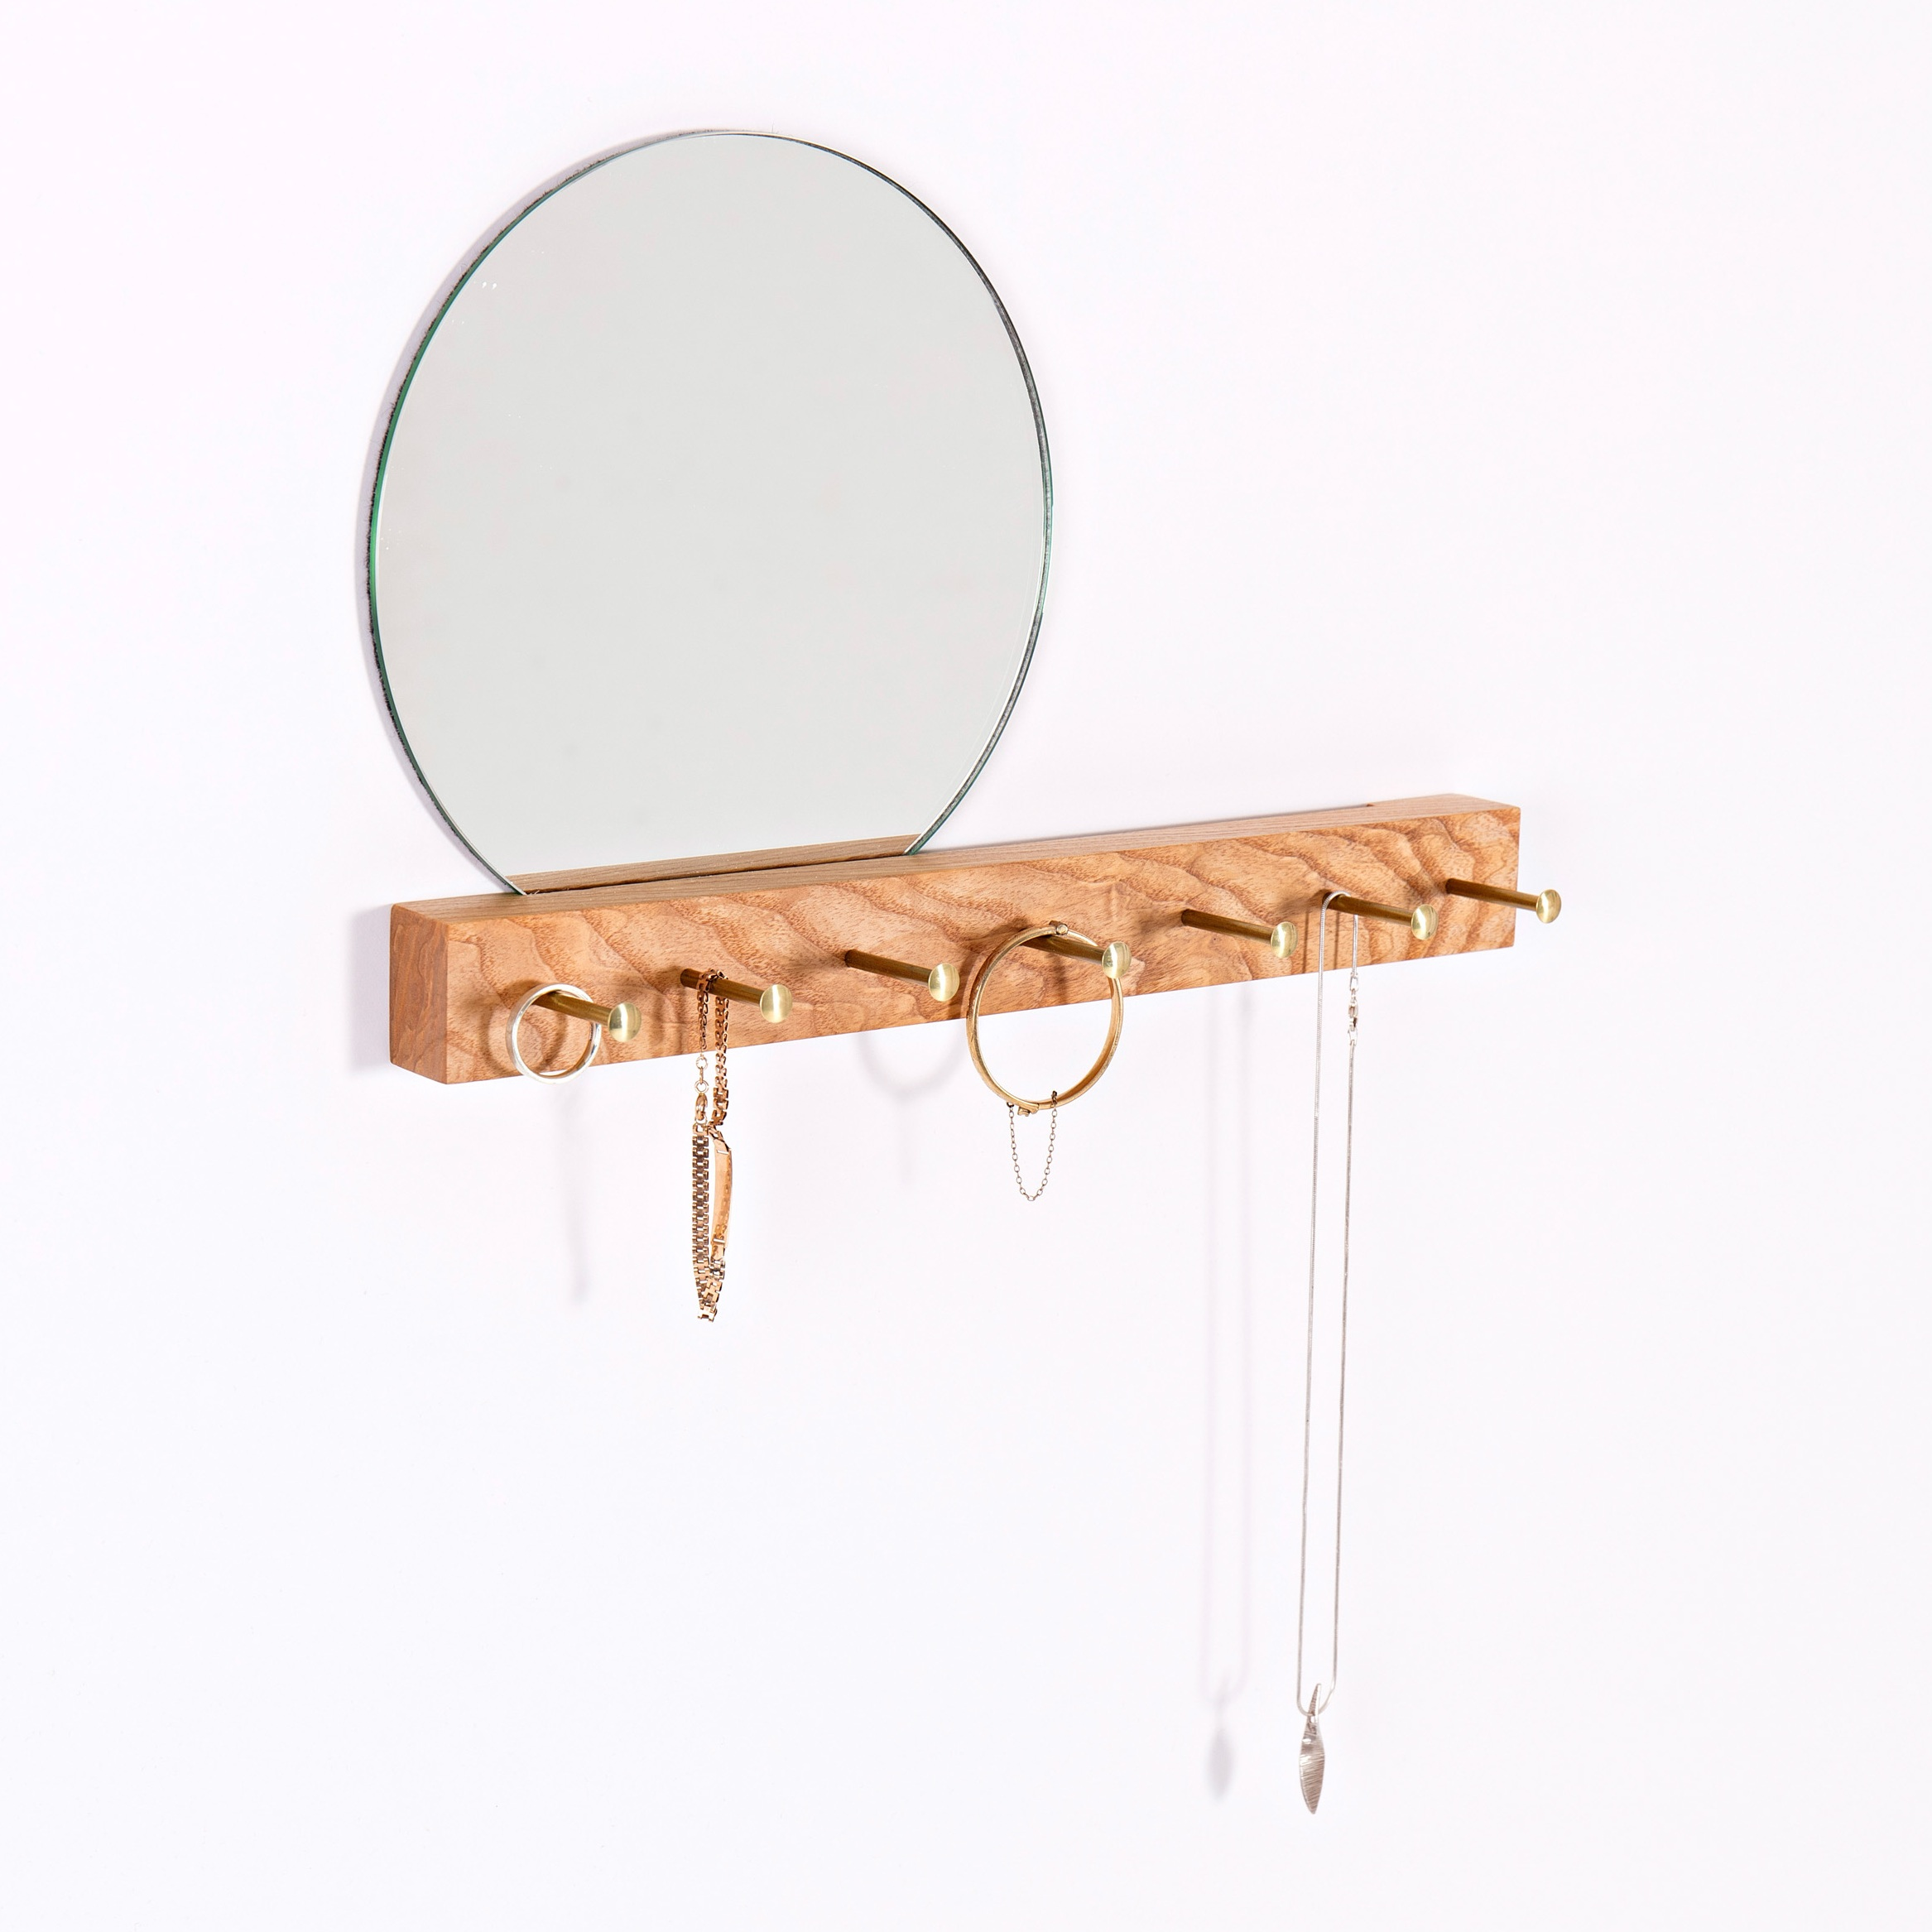 Concept - These simple, elegant hangers are perfect for organising jewellery or keys and cleverly combine with a mirror to check yourself on the way out the door.